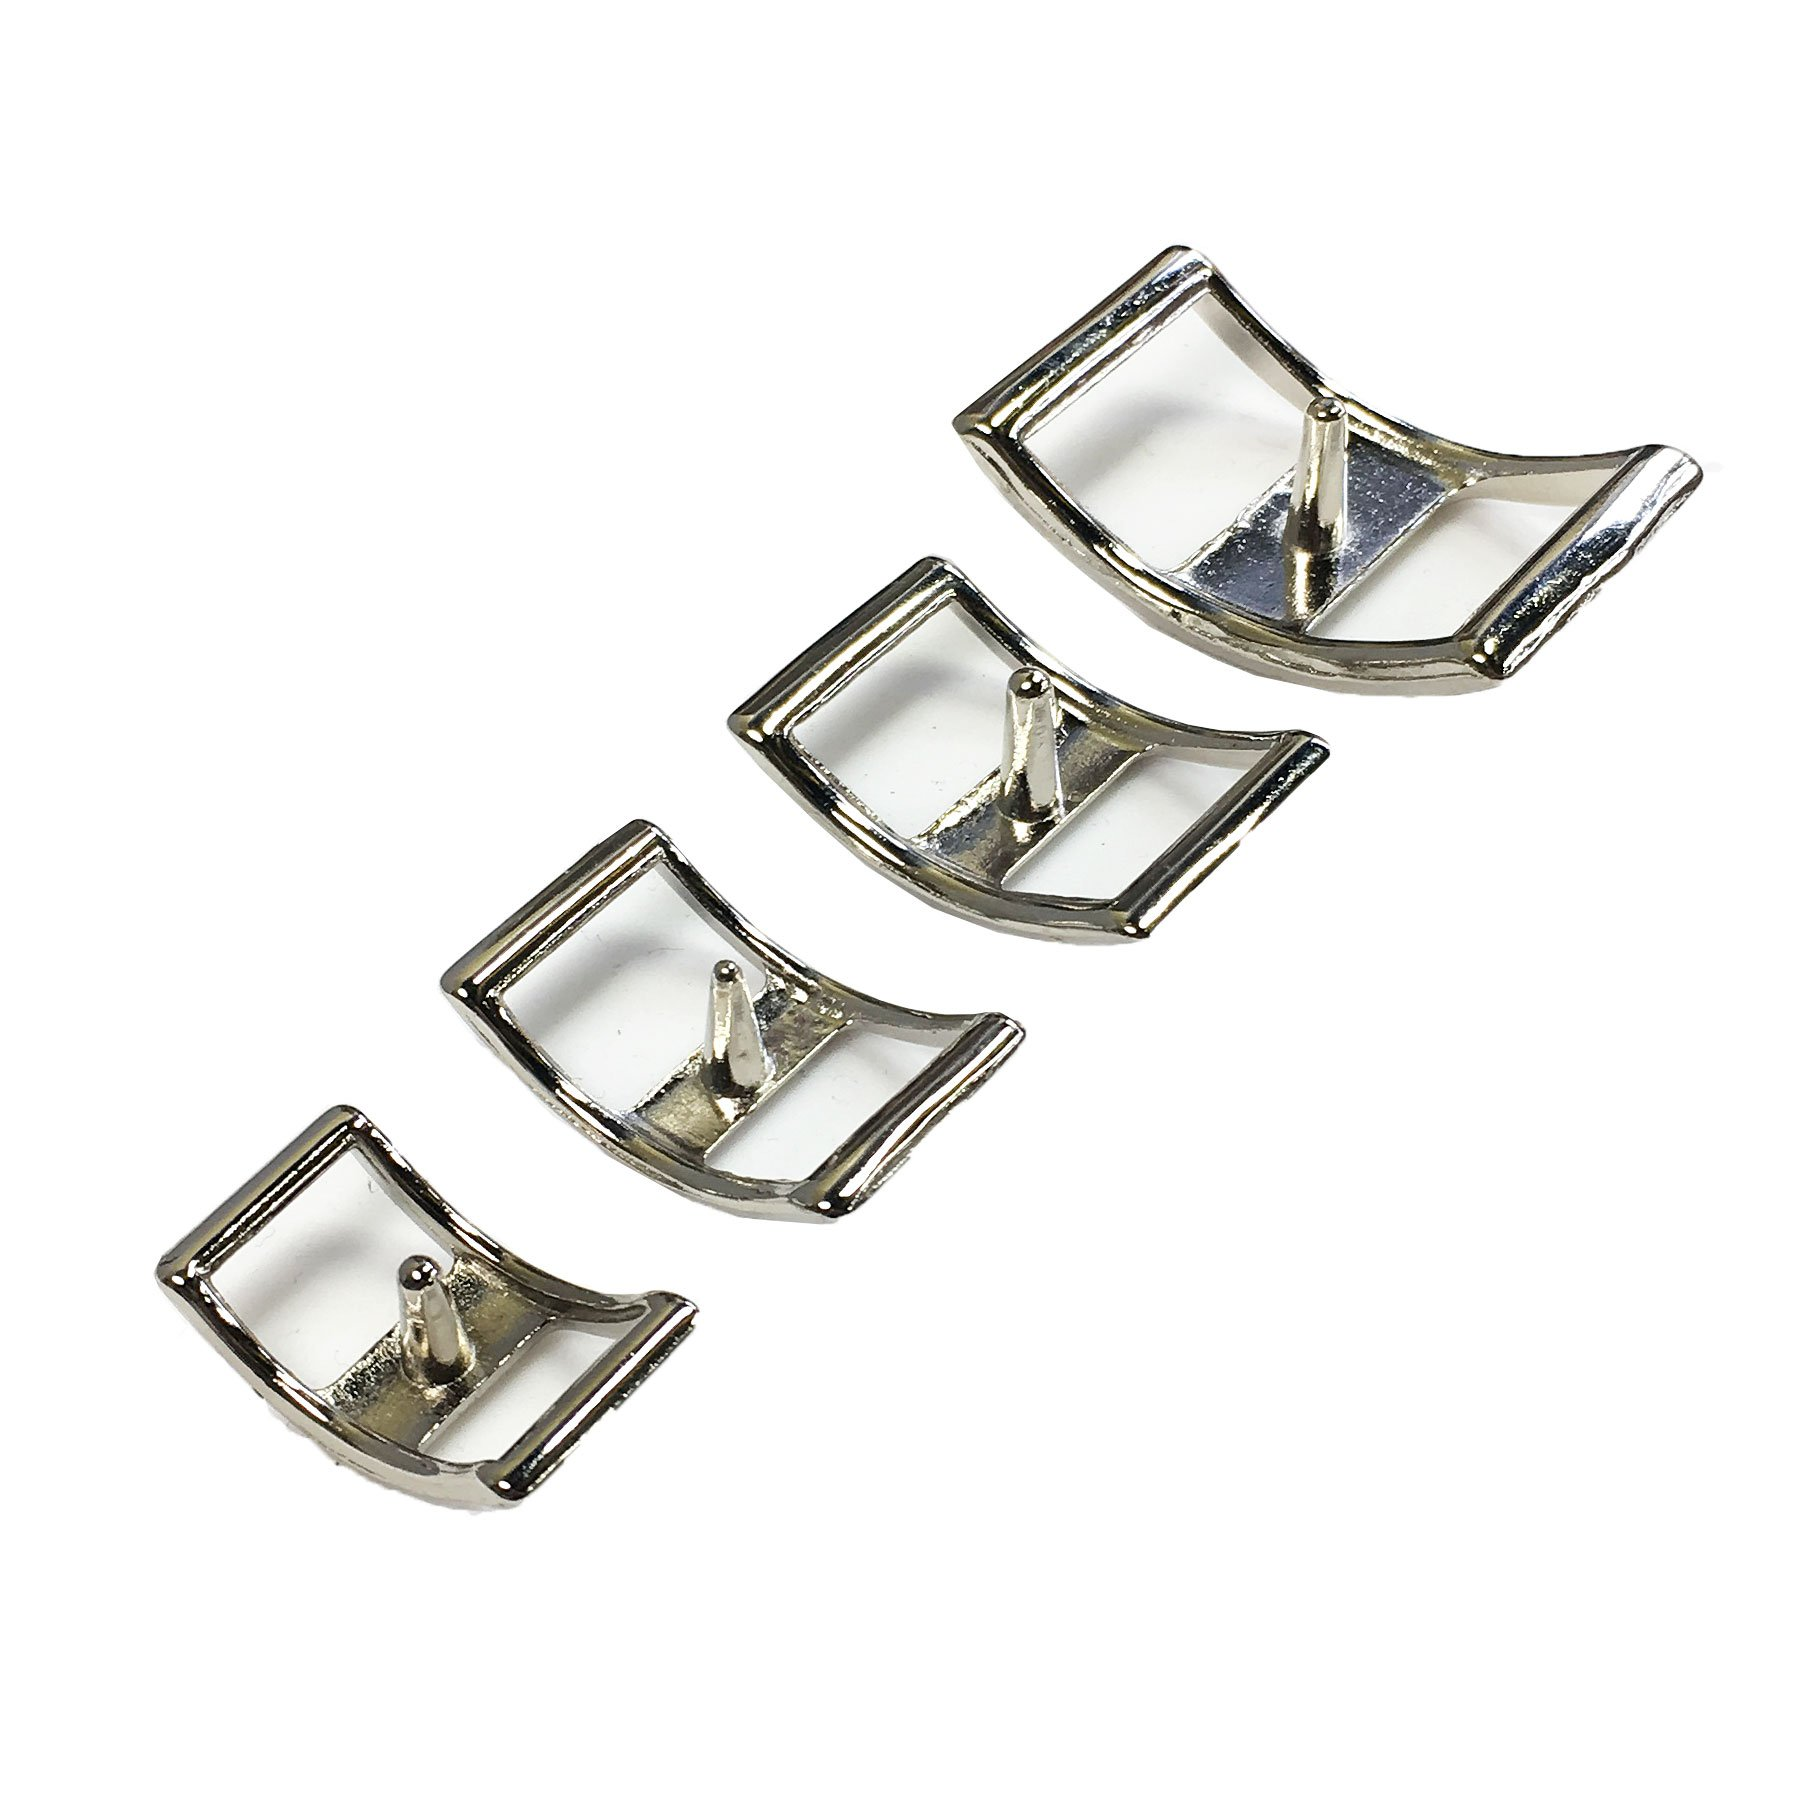 Conway Buckle Nickel Plated - image 3 of 3